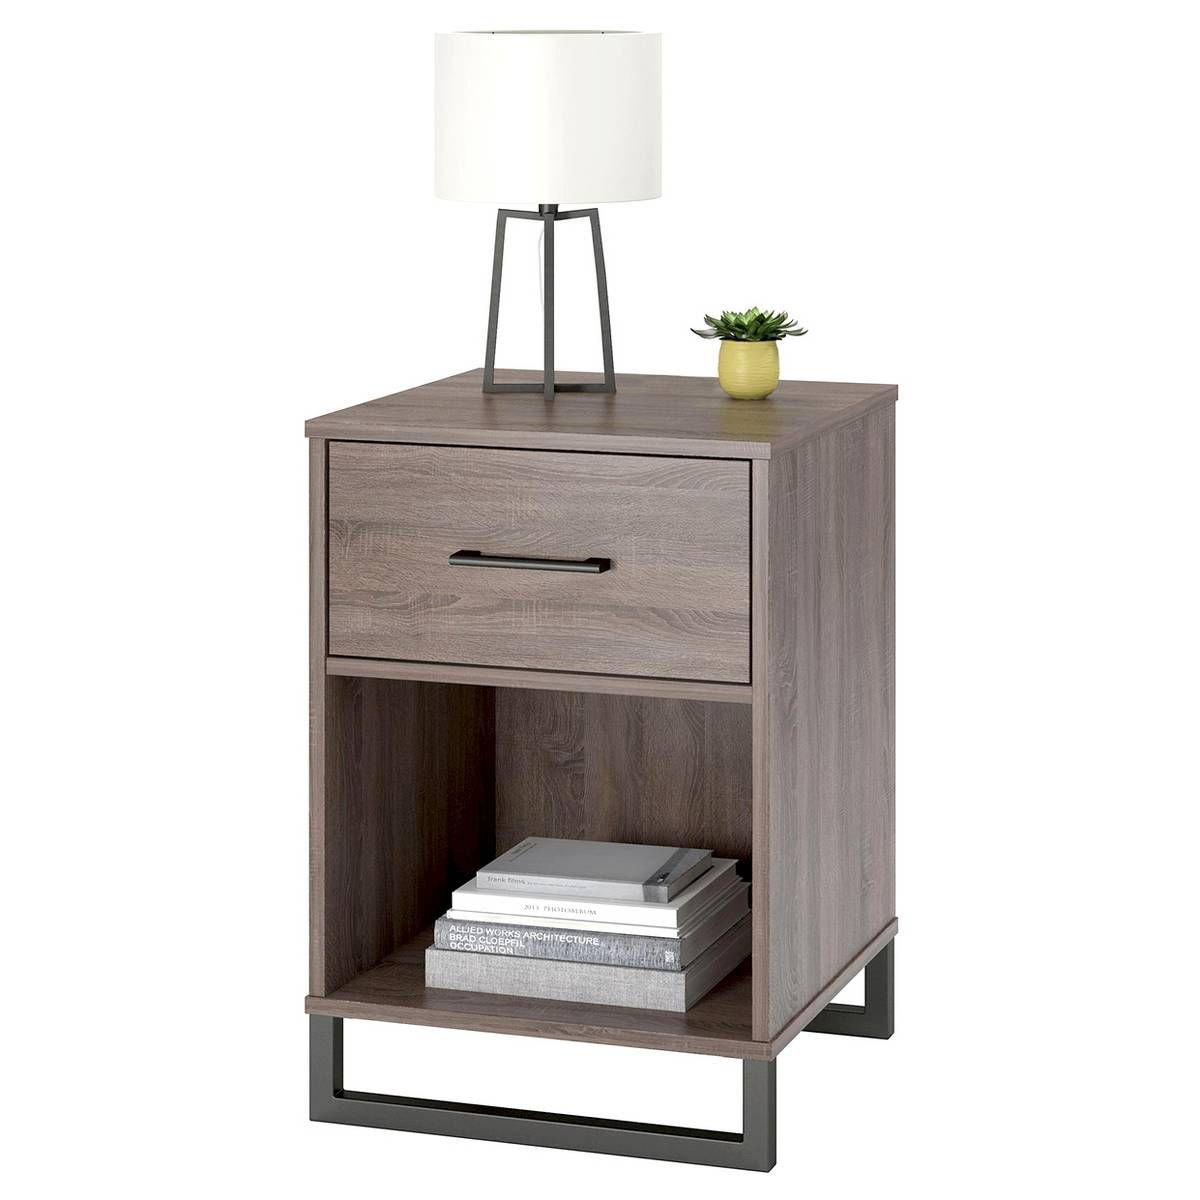 find product information ratings and reviews for mixed material room essentials accent table nightstand brown target raw wood side victorian living furniture foot long console